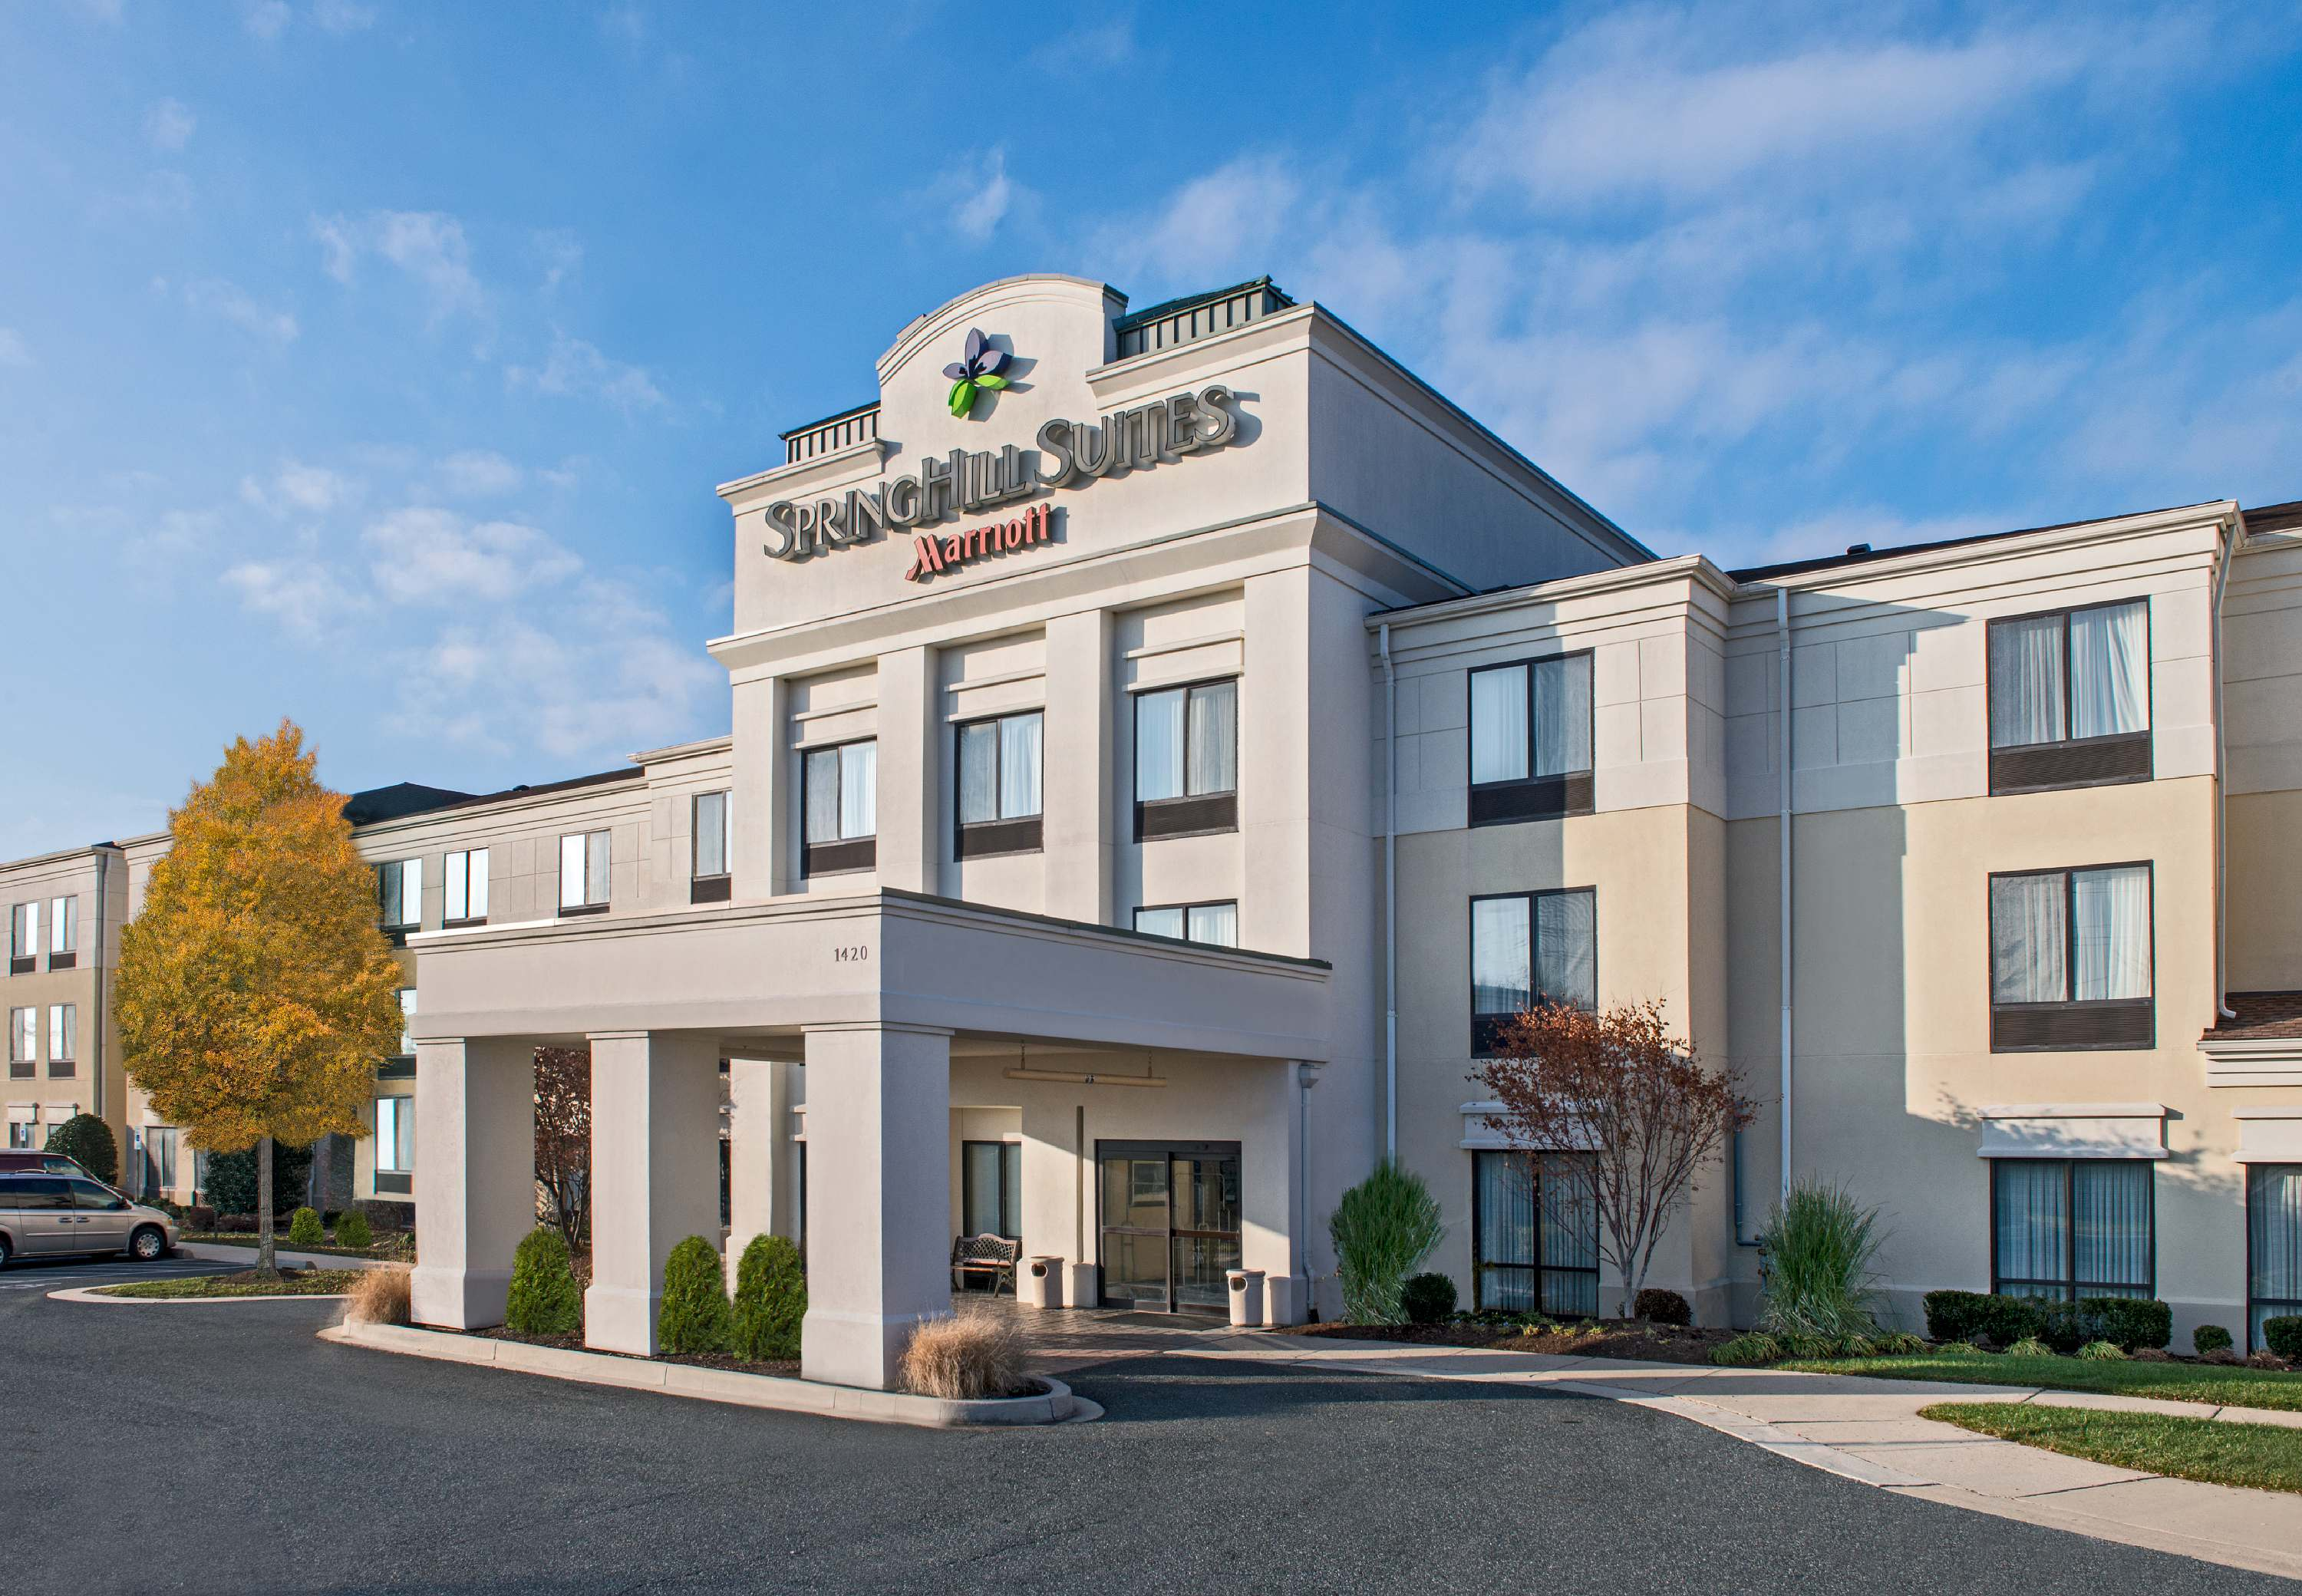 SpringHill Suites by Marriott Edgewood Aberdeen image 13